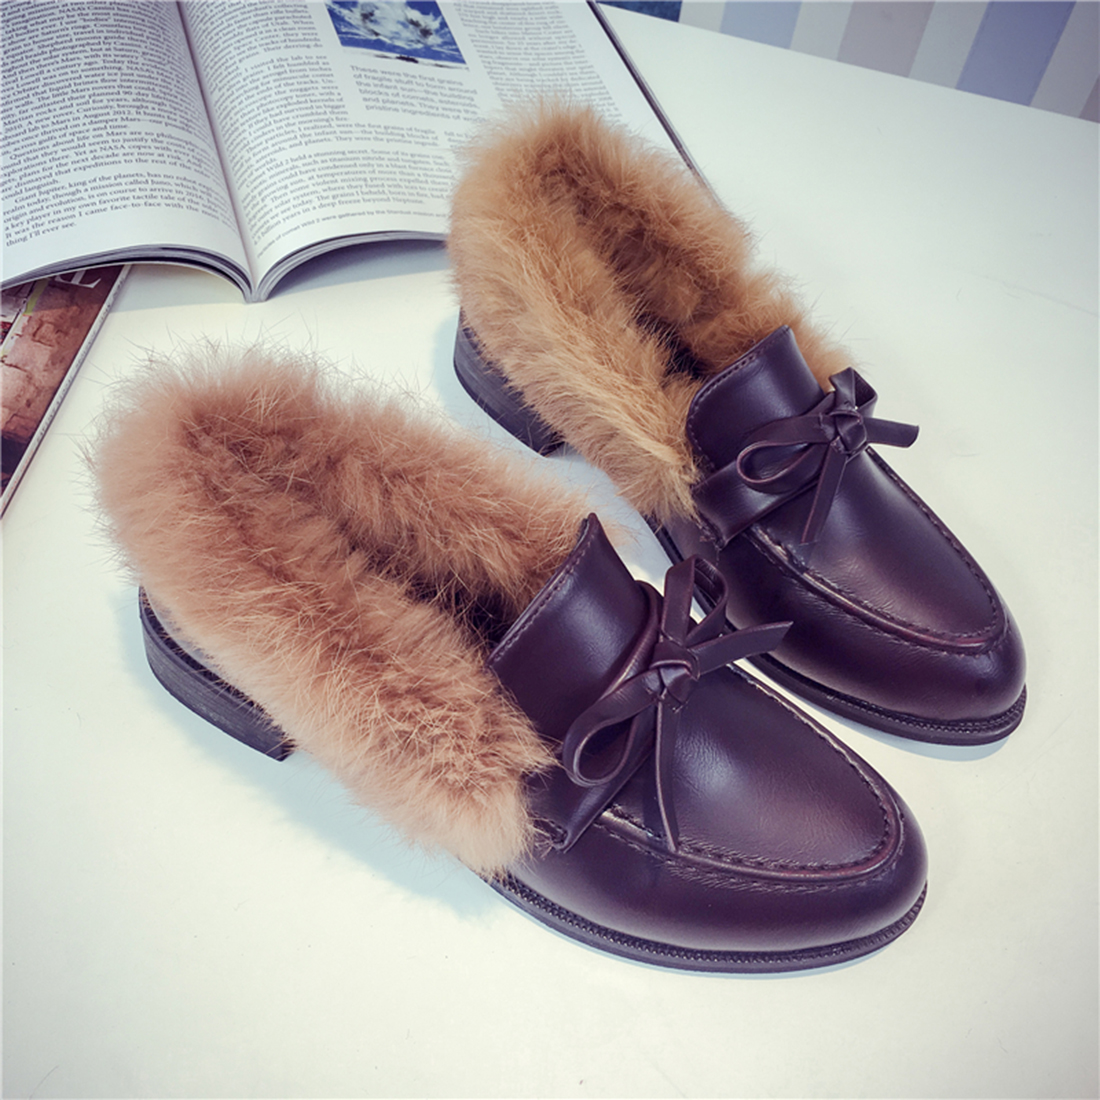 Fashion Winter Warm PU Leather Fur Part Bowknot Slip On Loafers Shoes Flat Moccasins low heels Casual Slip On Loafer Shoes Flat new casual shoes winter fur men loafers 2017 slip on fashion drivers loafer boat shoes genuine leather moccasins plush men shoes